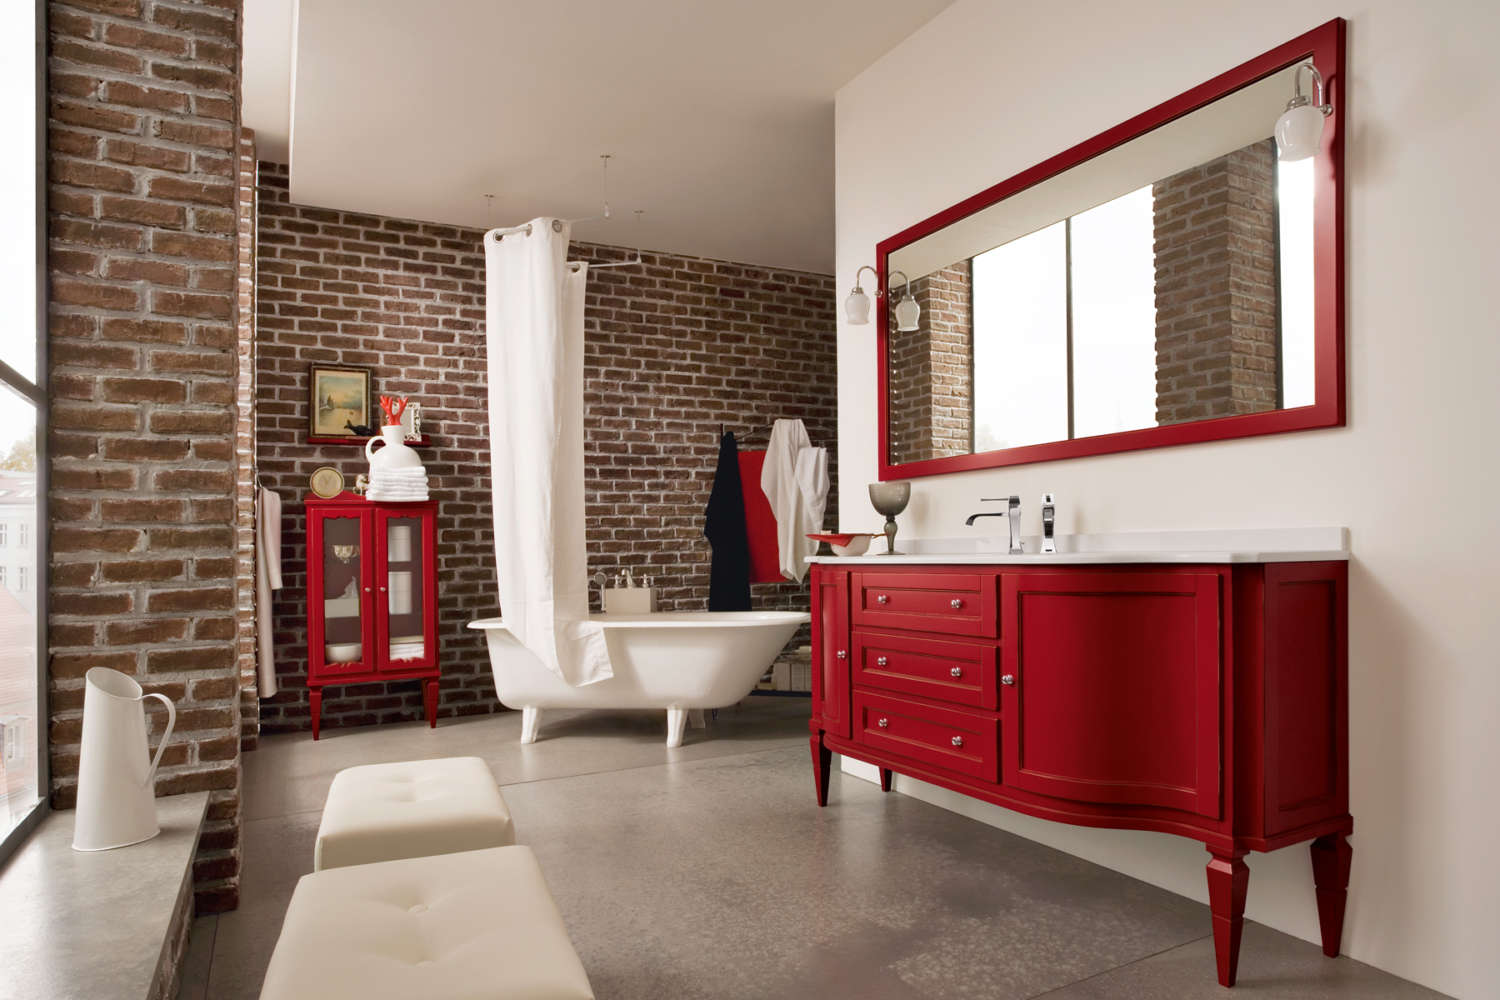 A red painted freestanding vanity on legs by Cerasa Cabinetry with polished silver door pulls and white quartz top is the focal point of this contemporary bath. Additional features are the large red framed mirror above the vanity, red painted storage cabinet with legs and glass front doors by Cerasa Cabinetry, and white slipper tub. The bathroom features exposed brick walls and oversized windows. Design by Jeff Eakley of Bilotta Kitchens.